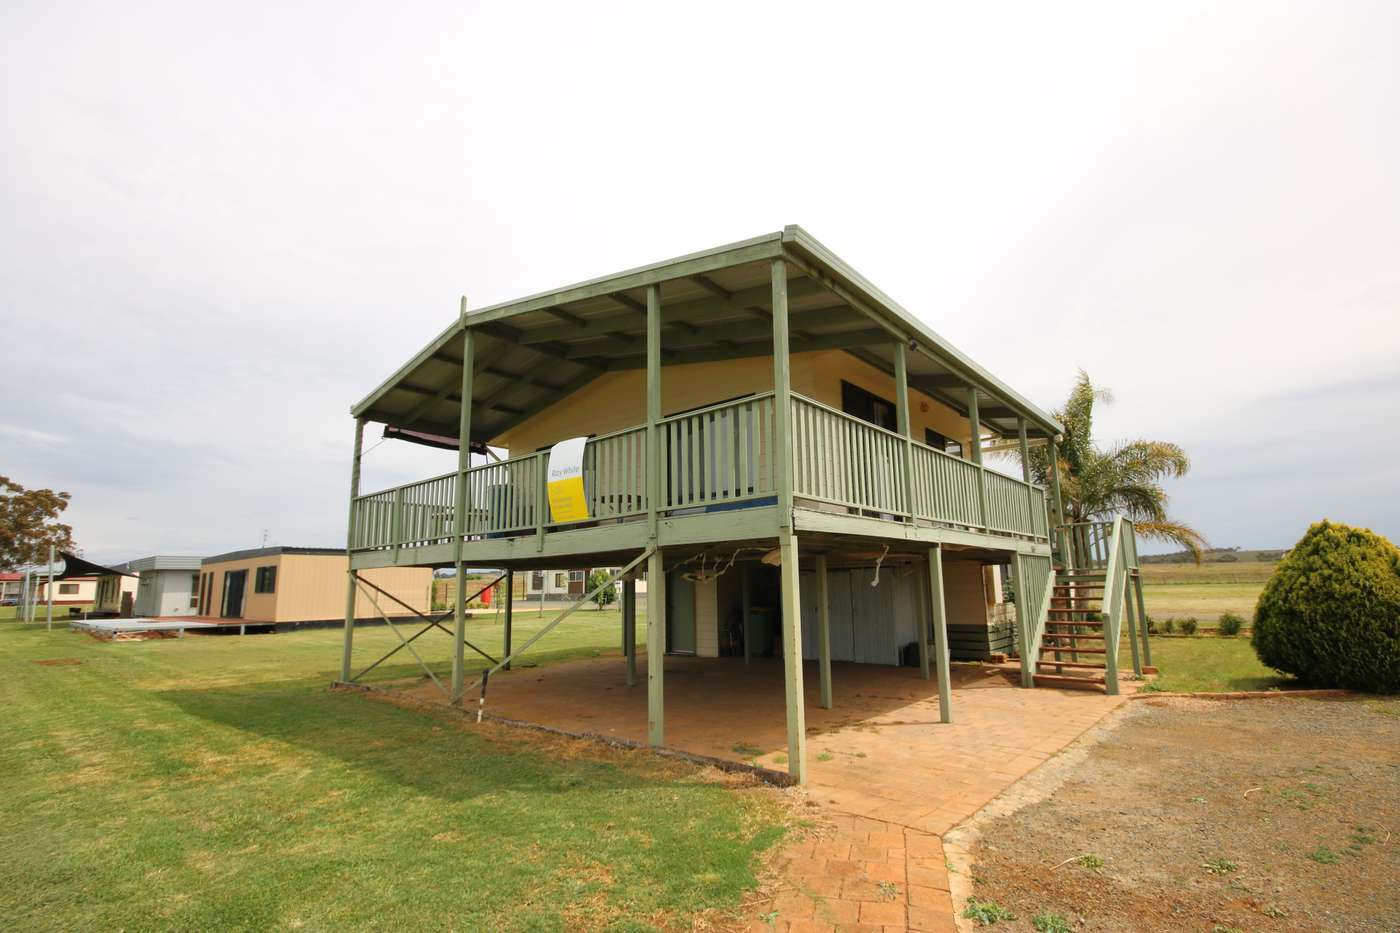 Main view of Homely house listing, 8 Lake Cooper Road, Corop, VIC 3559